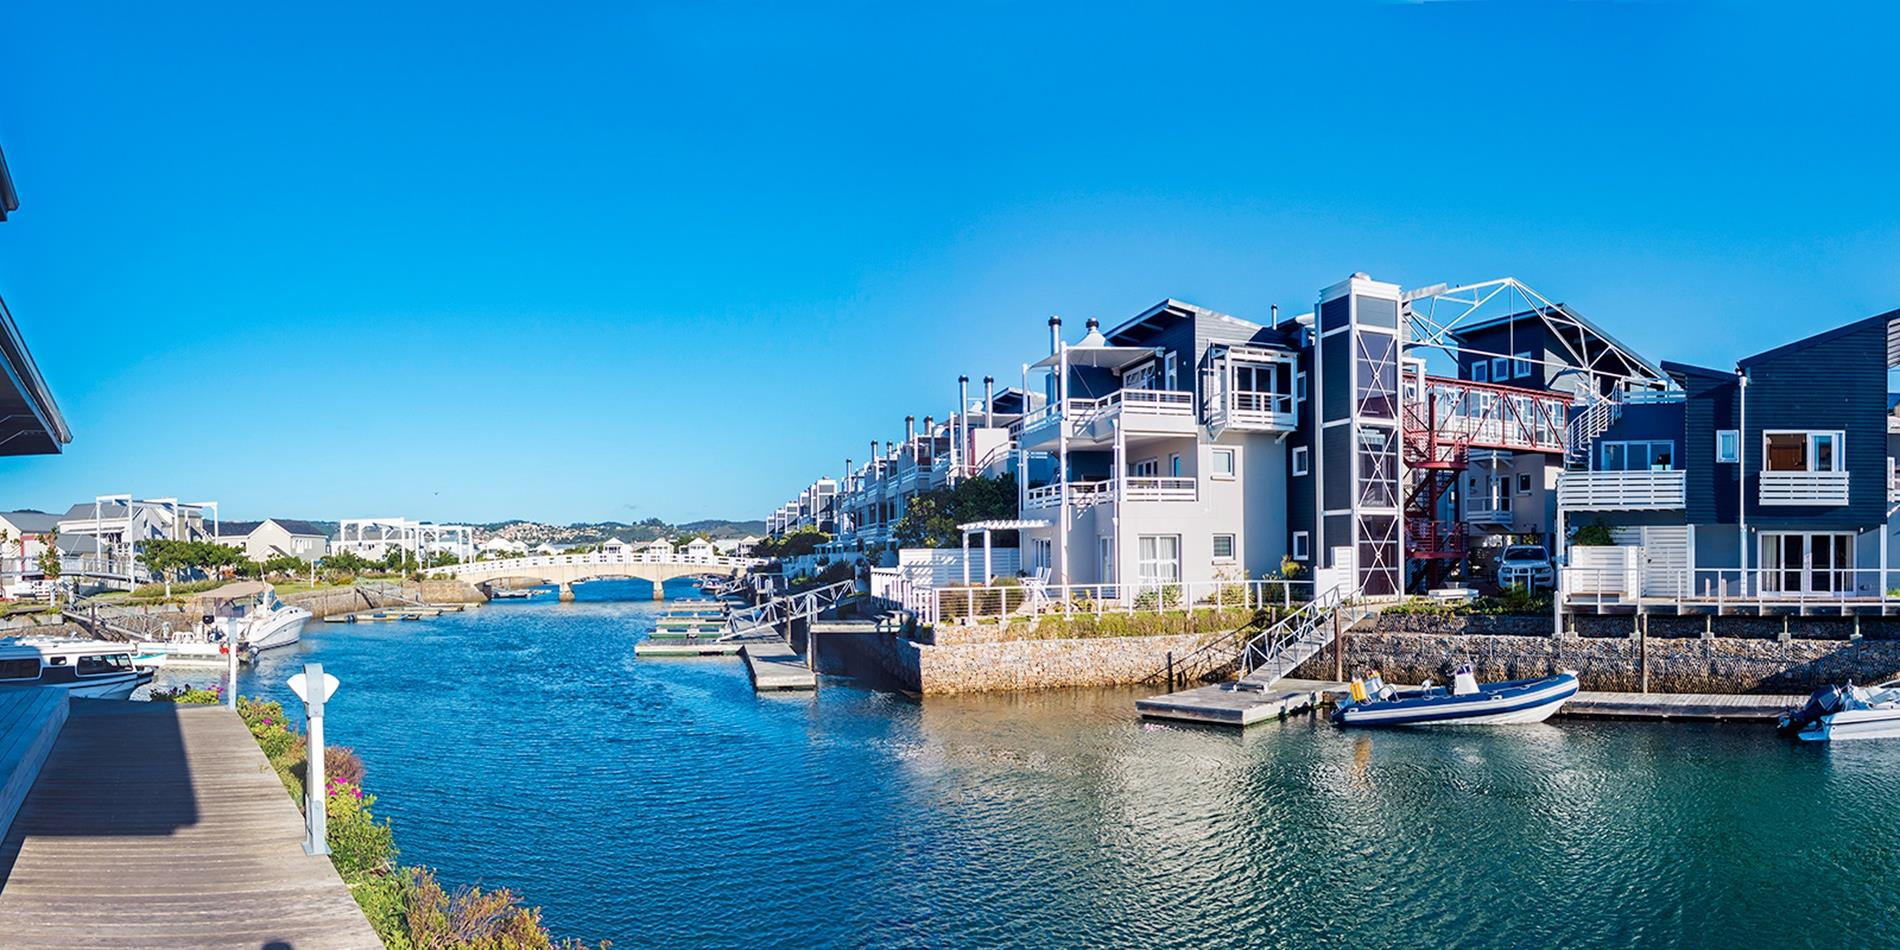 Knysna port with boats and houses